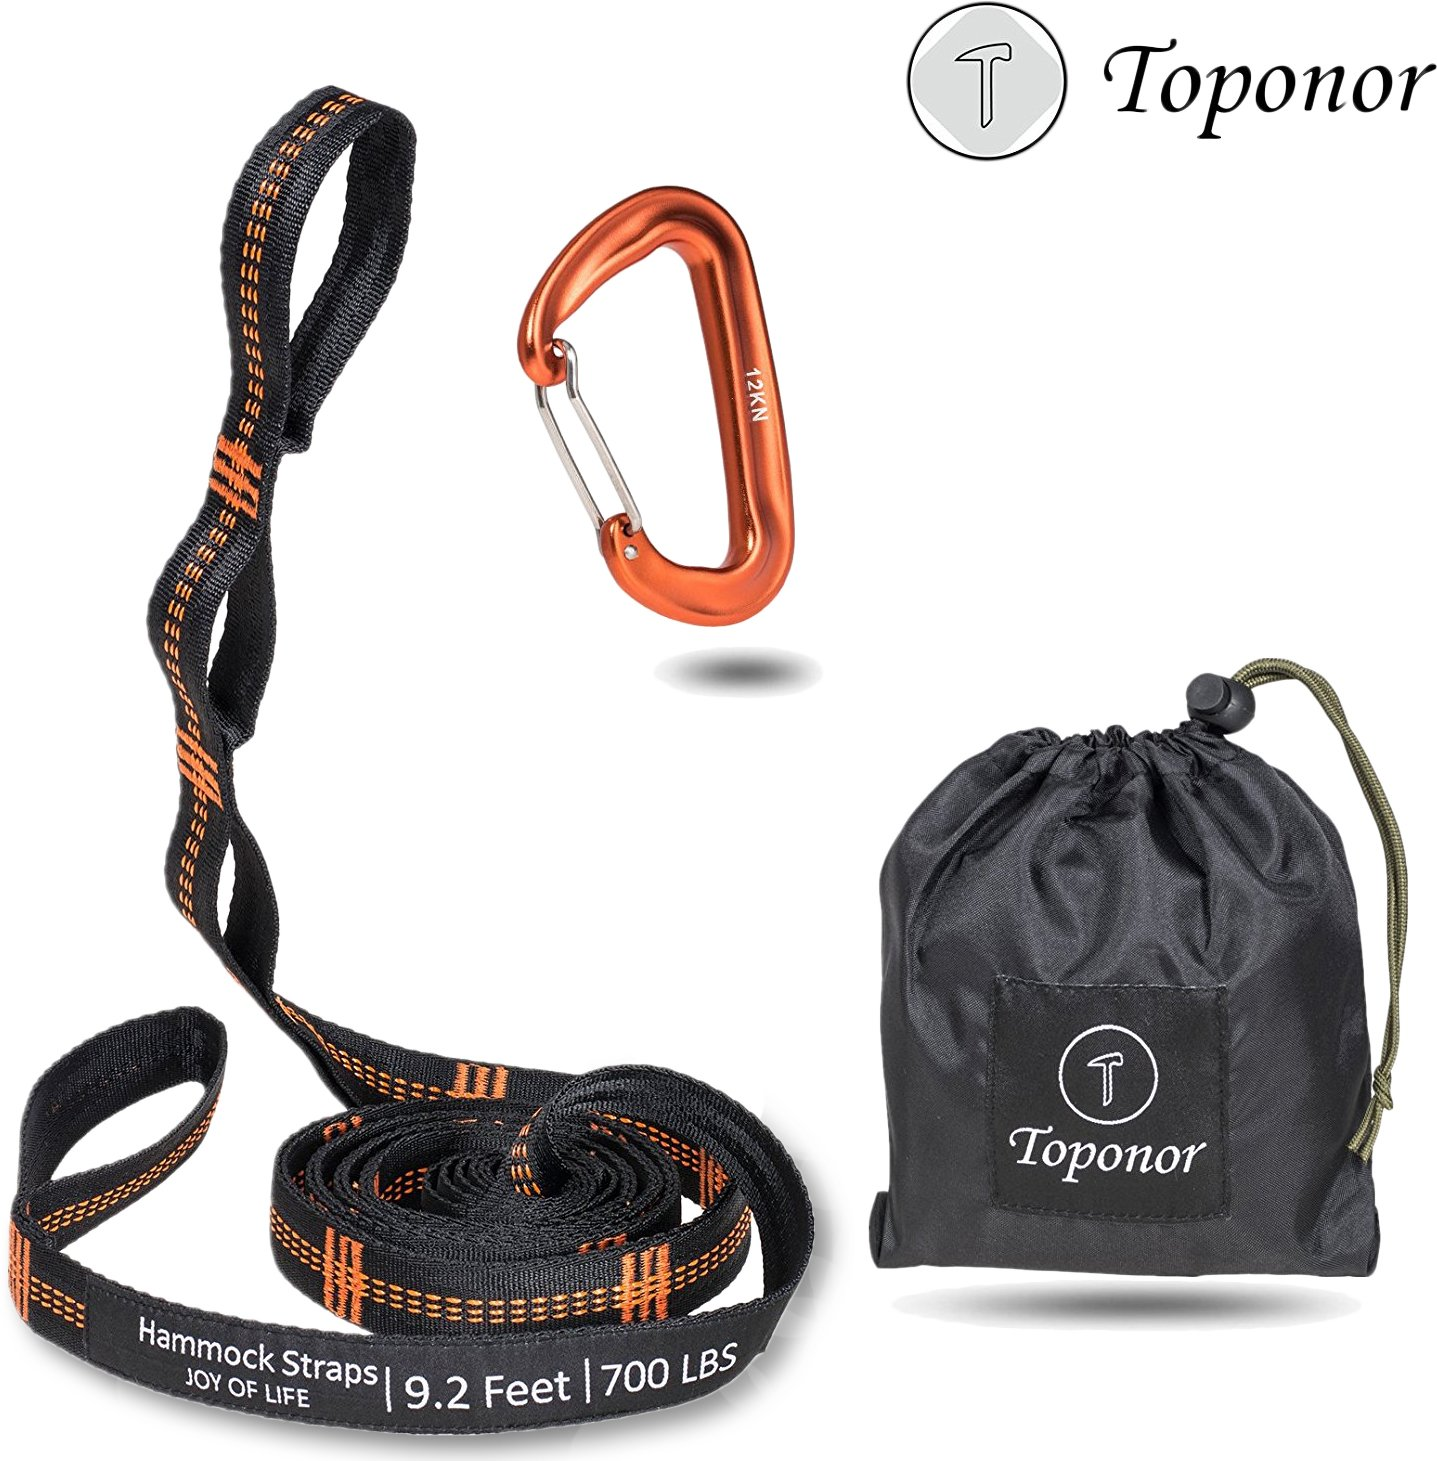 Hammock Tree Straps Set 9.2 Feet Long 16 Adjustable Loops 700 LBS Breaking Strength Tree webbing Heavy Duty 100% No Stretch Suspension Hanging Kit for Camping Hiking Backyard(12KN Carabiners Included)